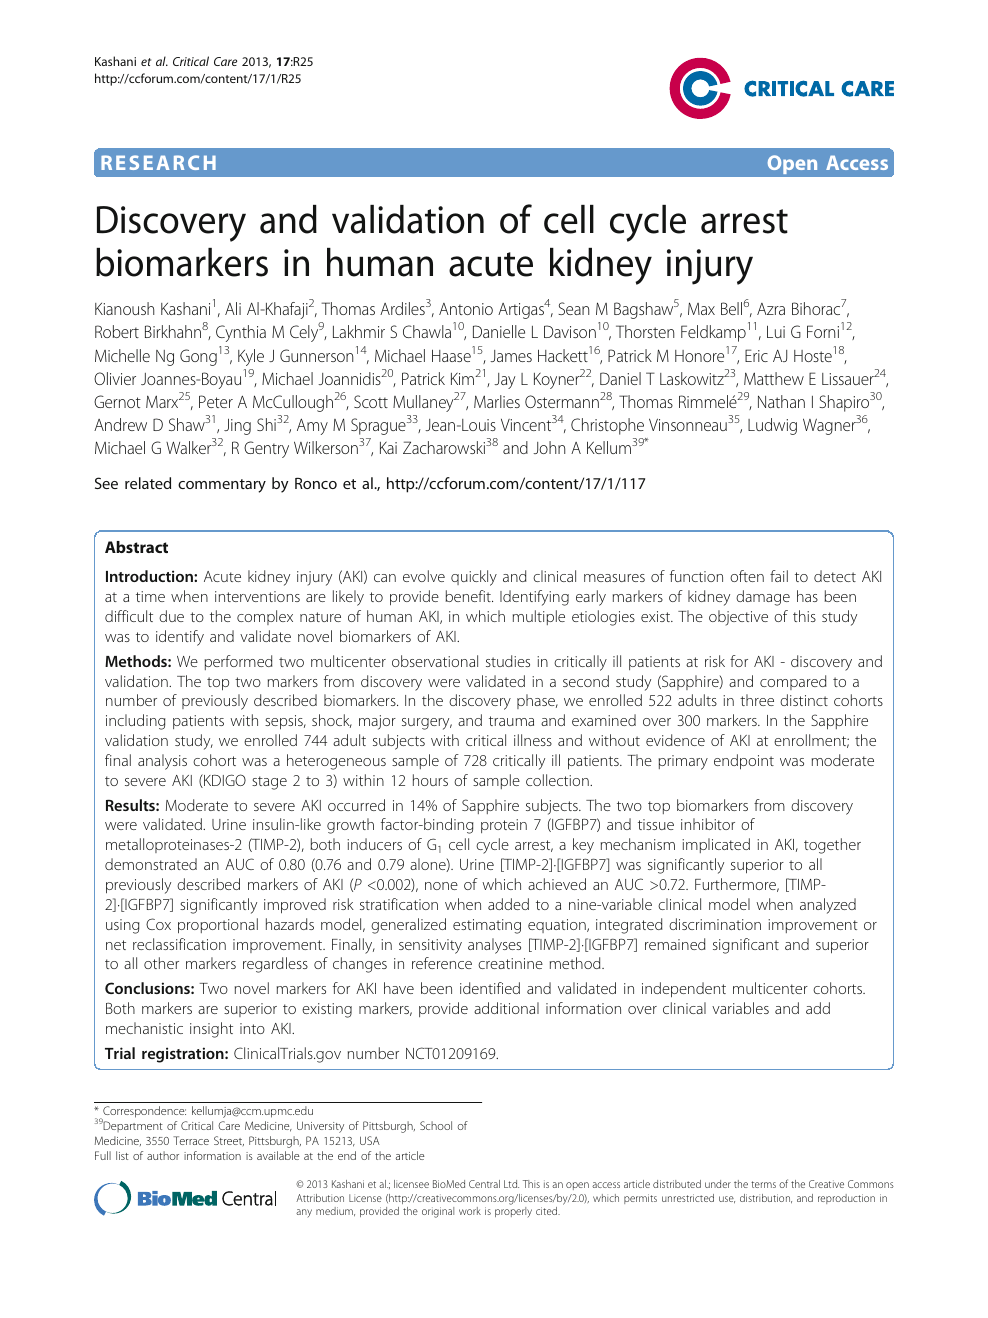 Discovery and validation of cell cycle arrest biomarkers in